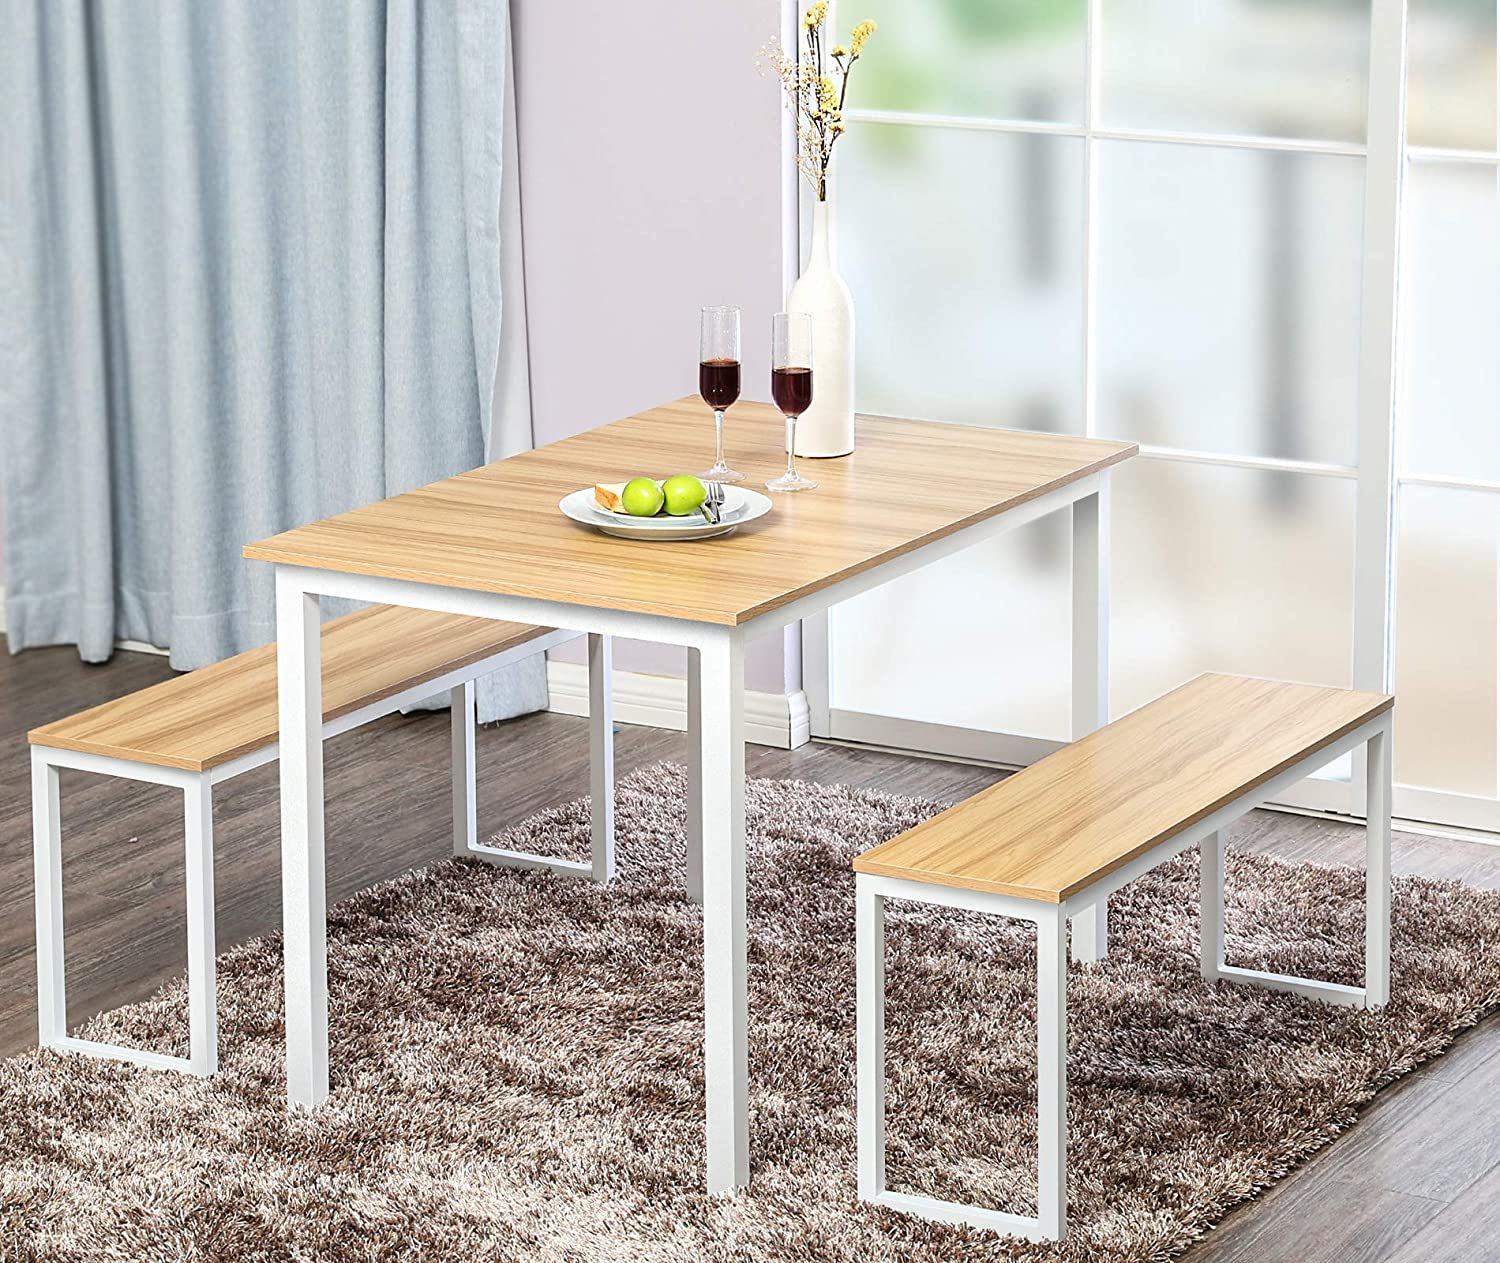 Fitueyes 3 Piece Dining Table Set With 2 Benches White Walmart Com In 2020 Nook Dining Set Dining Table Setting Dining Table With Bench